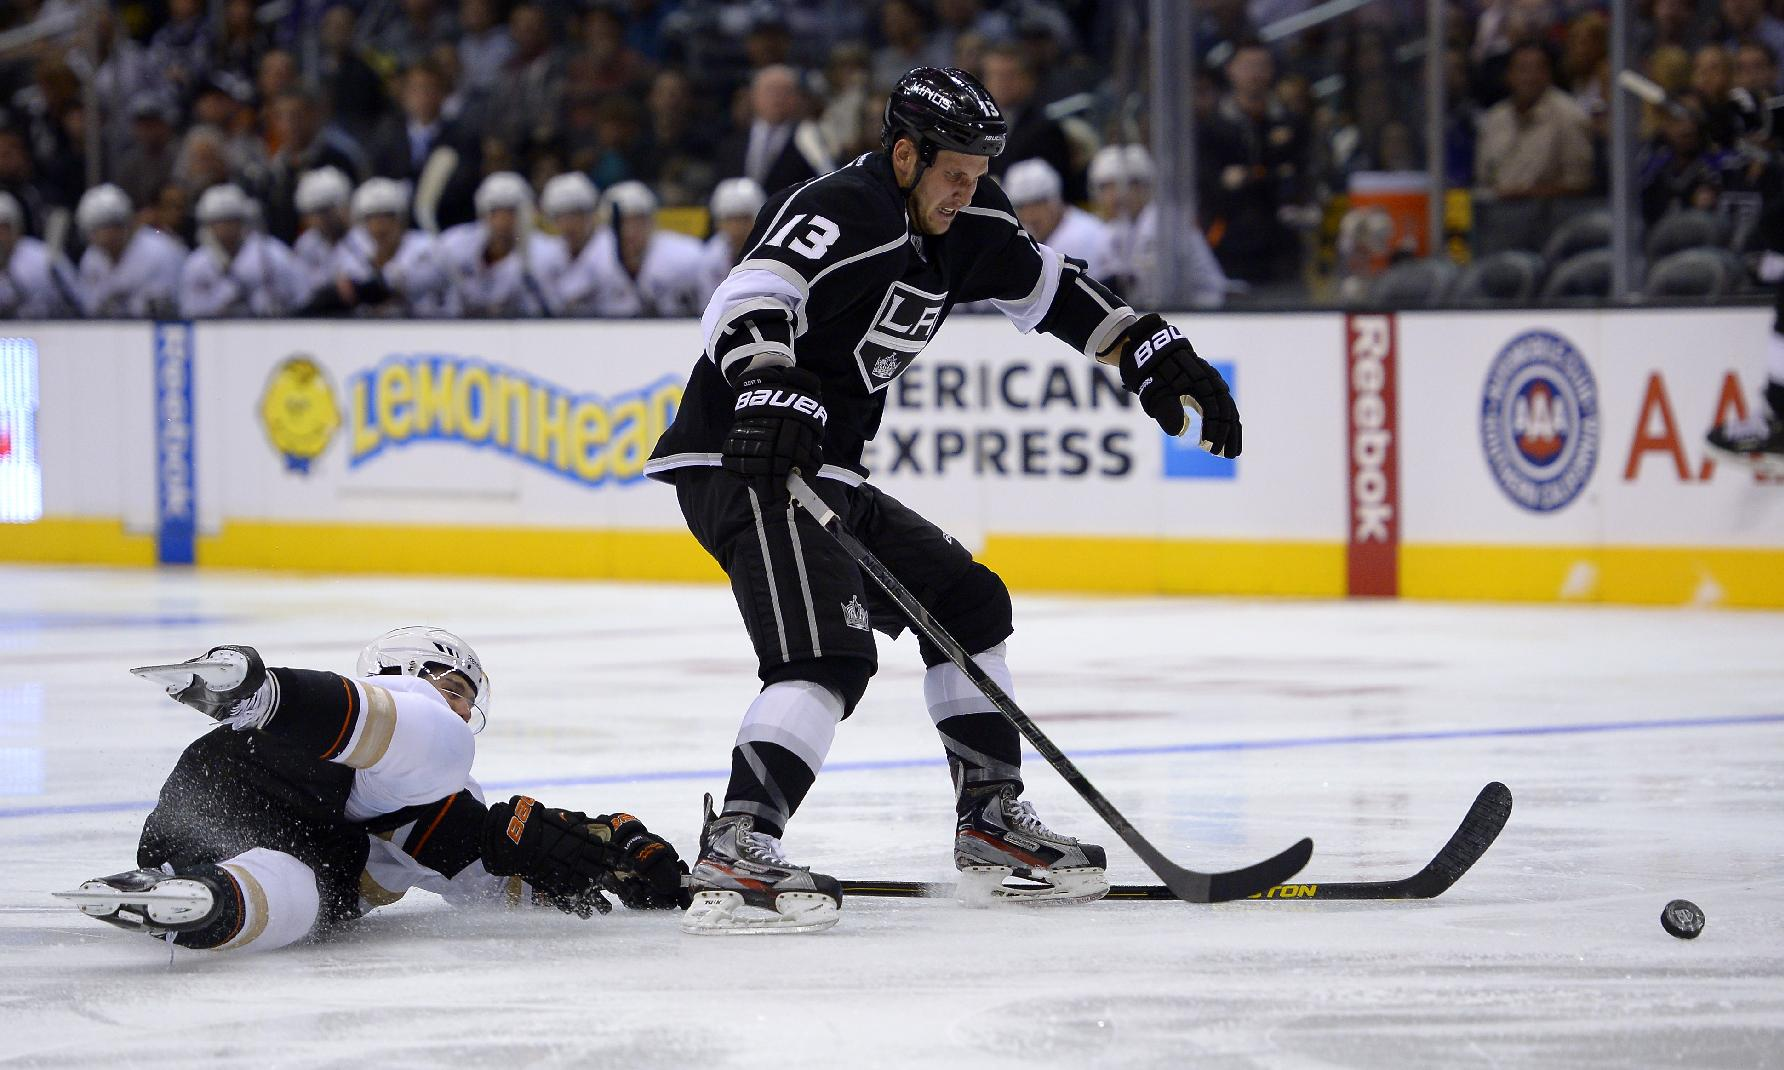 Los Angeles Kings left wing Kyle Clifford, right, takes the puck as Anaheim Ducks defenseman Ben Lovejoy reaches in during the second period of their NHL preseason hockey game, Tuesday, Sept. 24, 2013, in Los Angeles